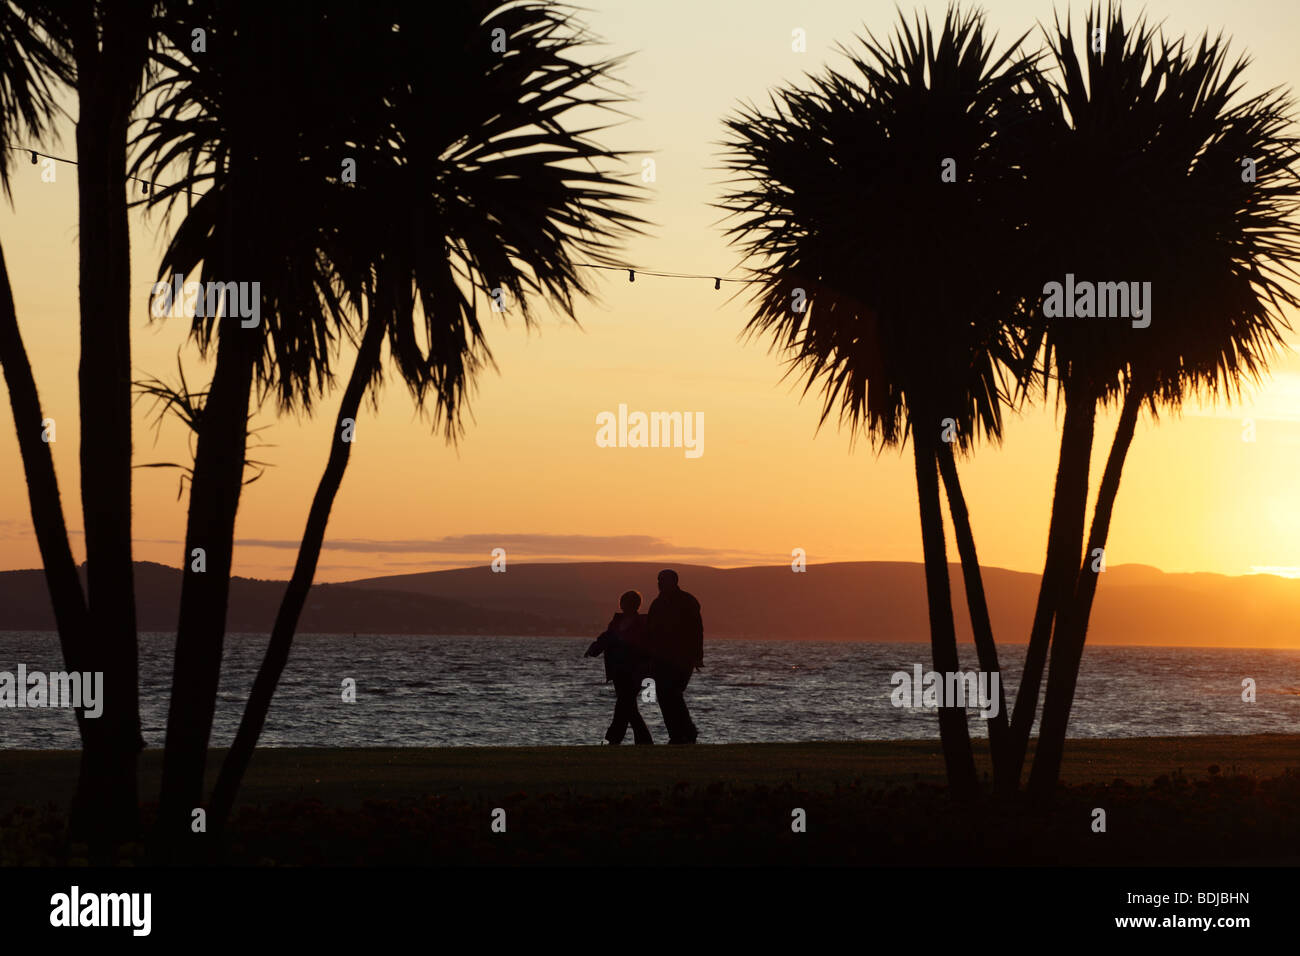 View looking West at sunset across the Firth of Clyde from Largs promenade in Ayrshire, Scotland, UK - Stock Image